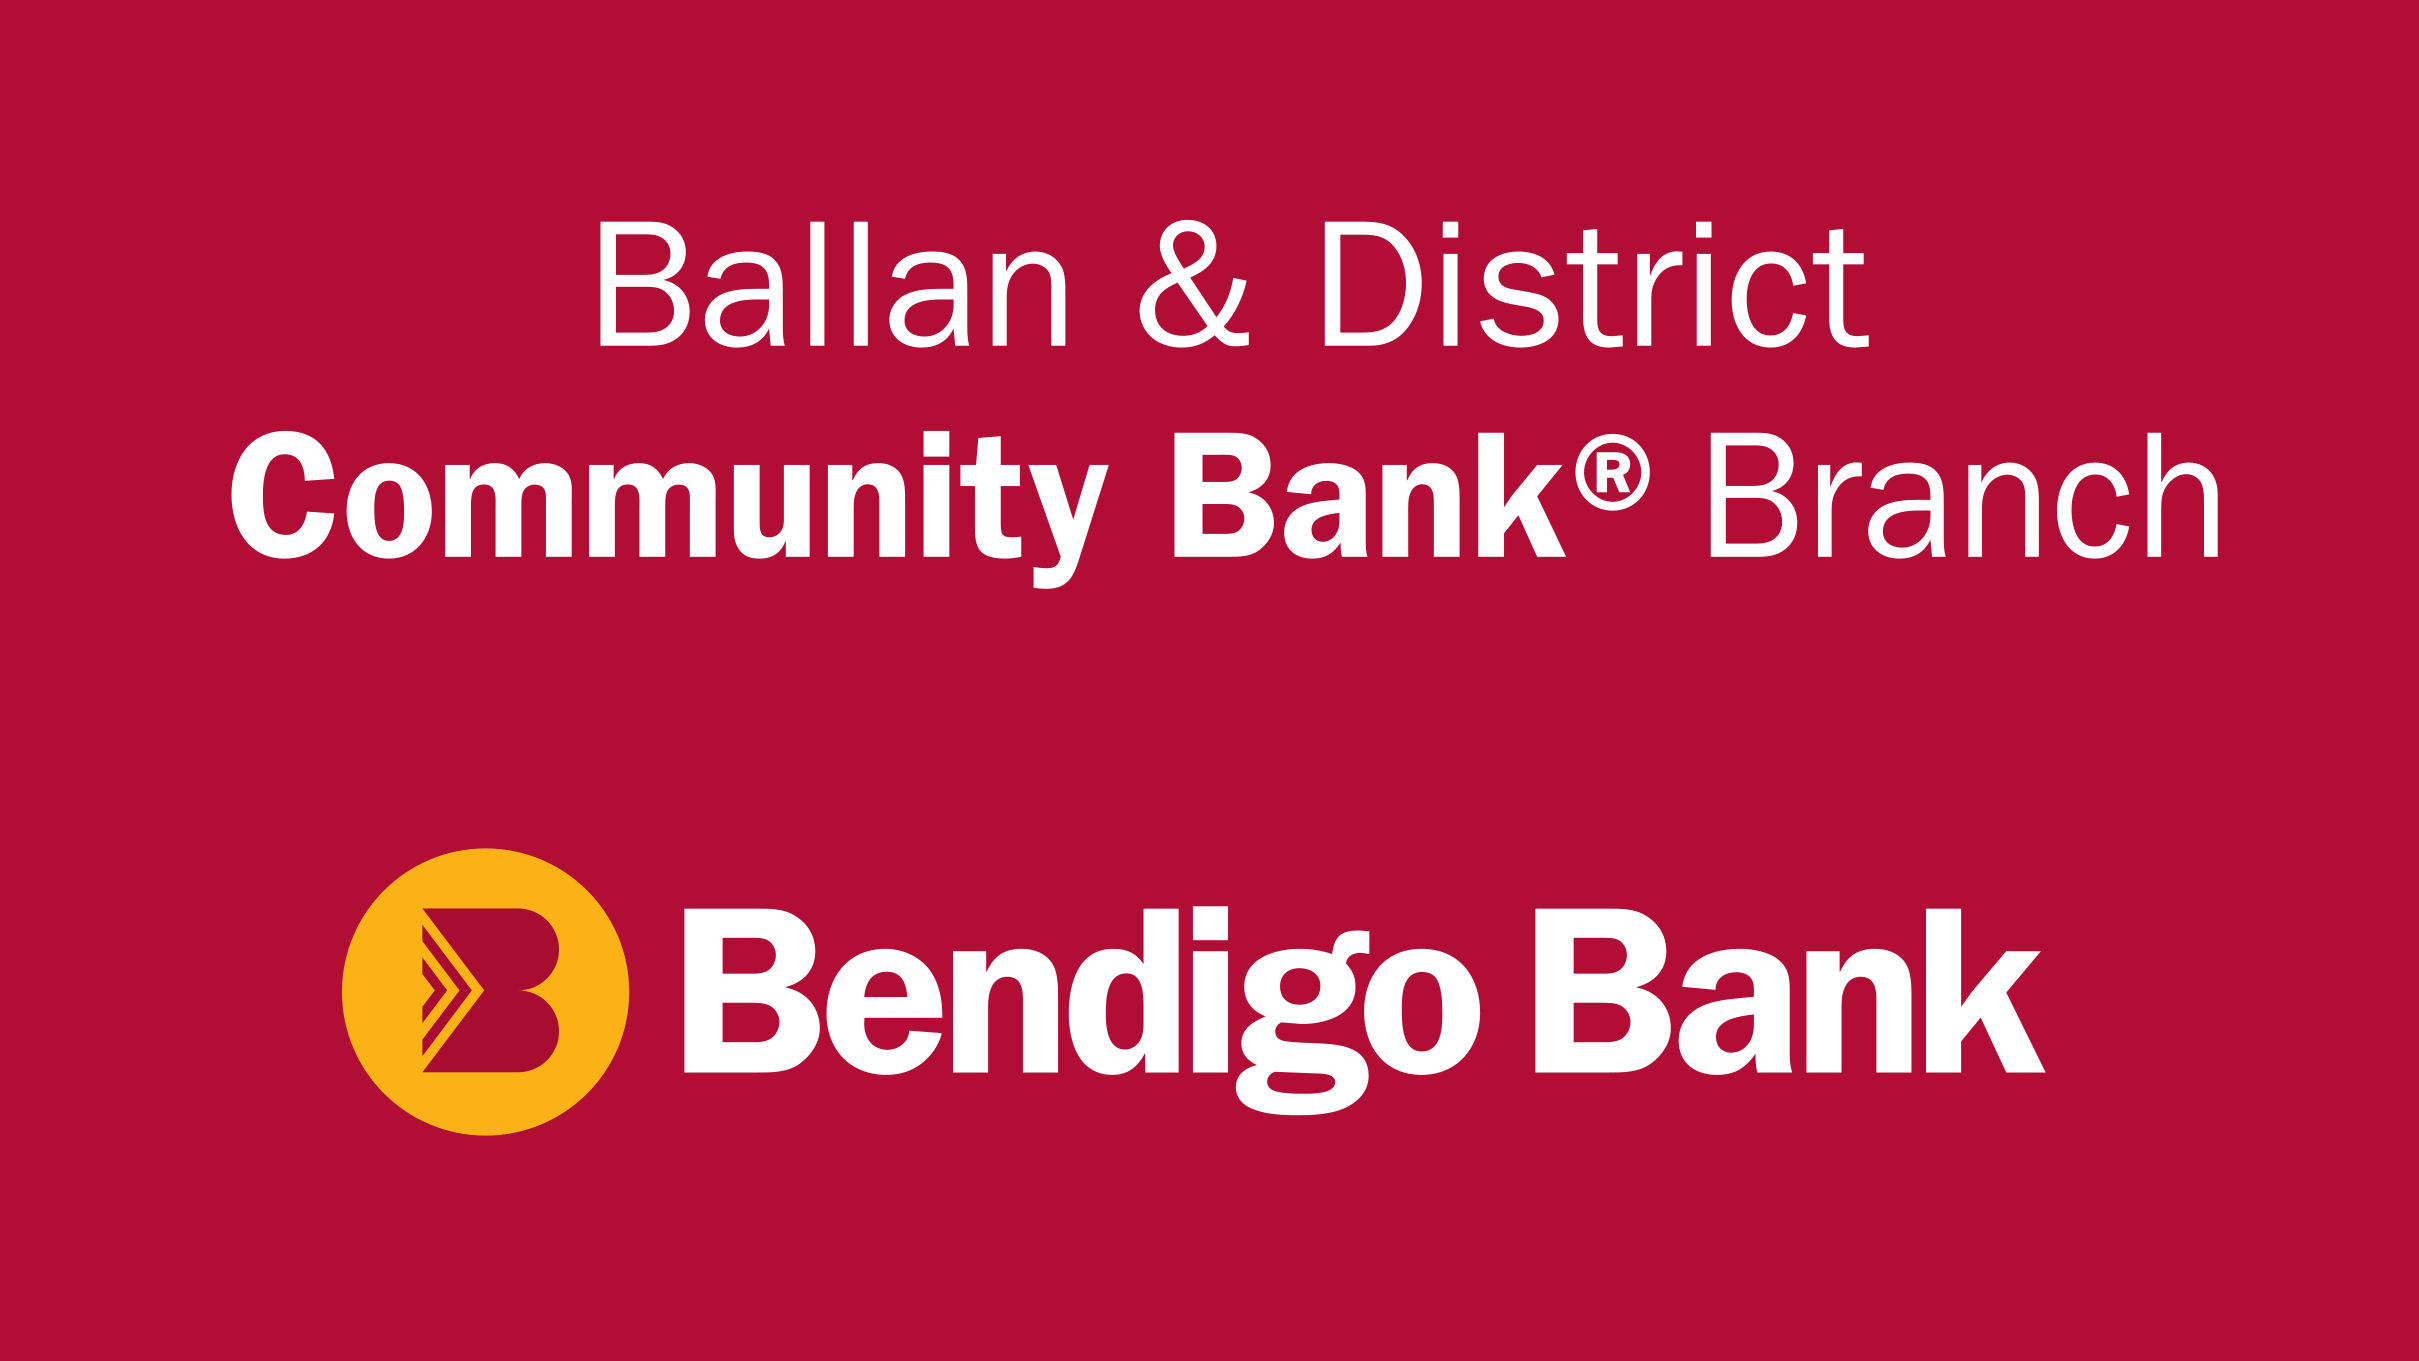 Bendigo Bank (Screen)